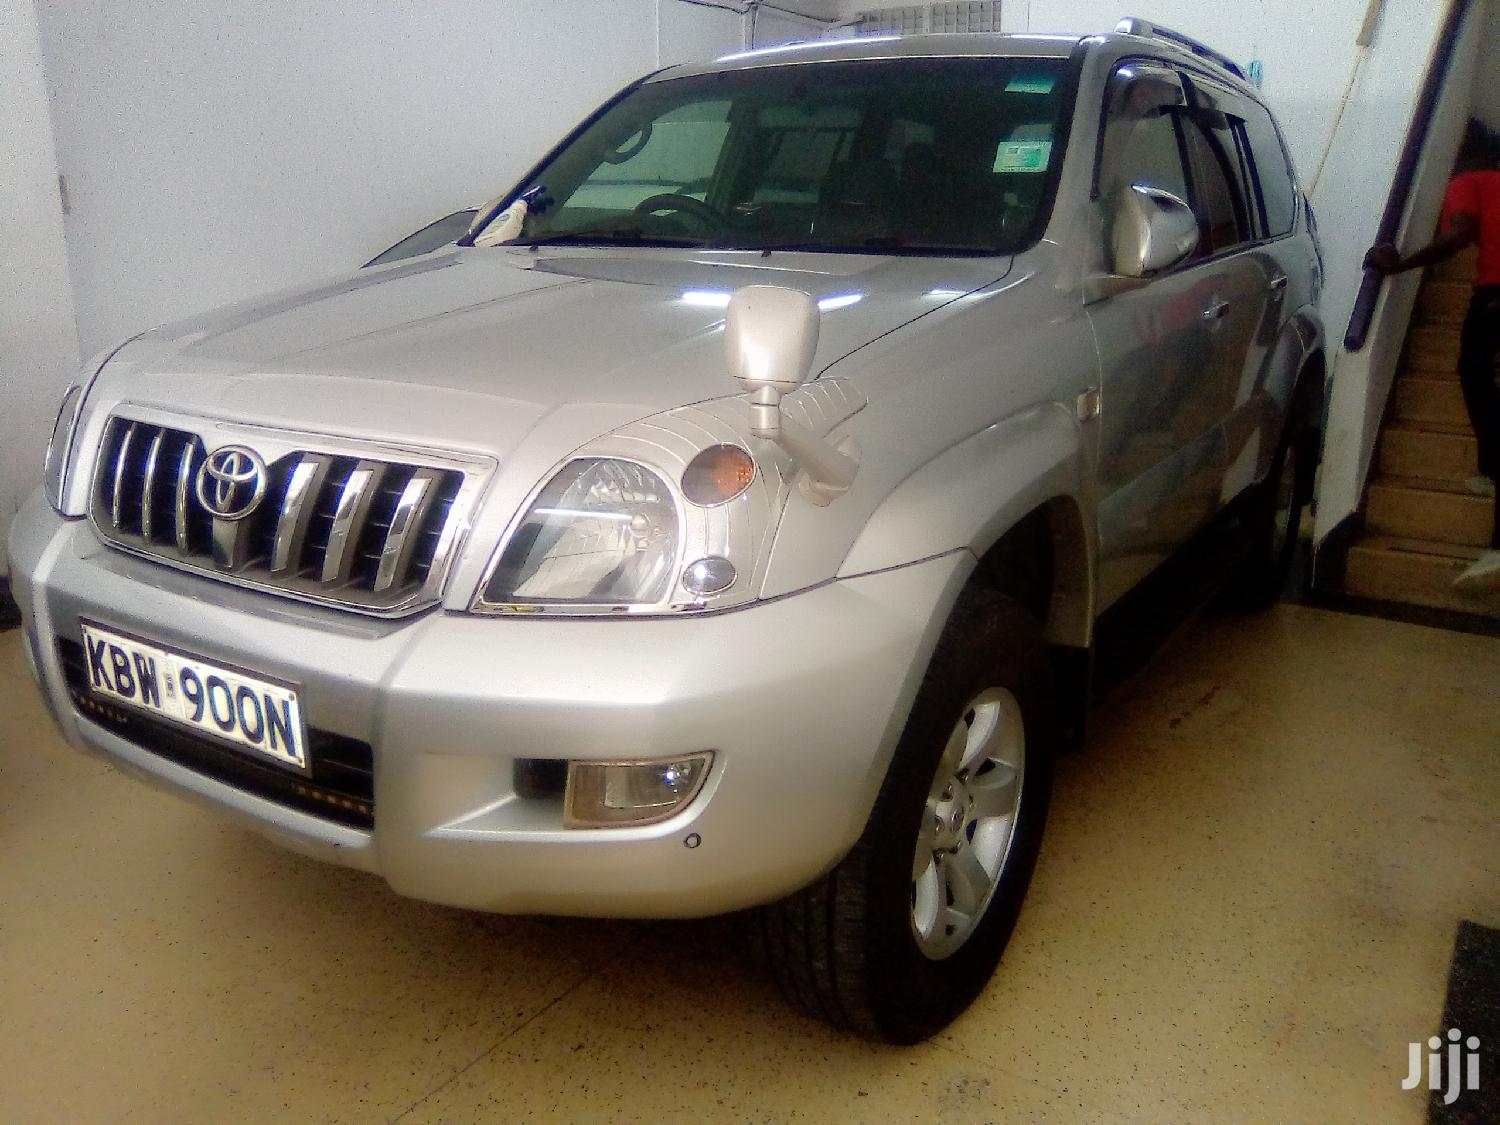 Toyota Land Cruiser Prado 2006 Gray | Cars for sale in Mvita, Mombasa, Kenya